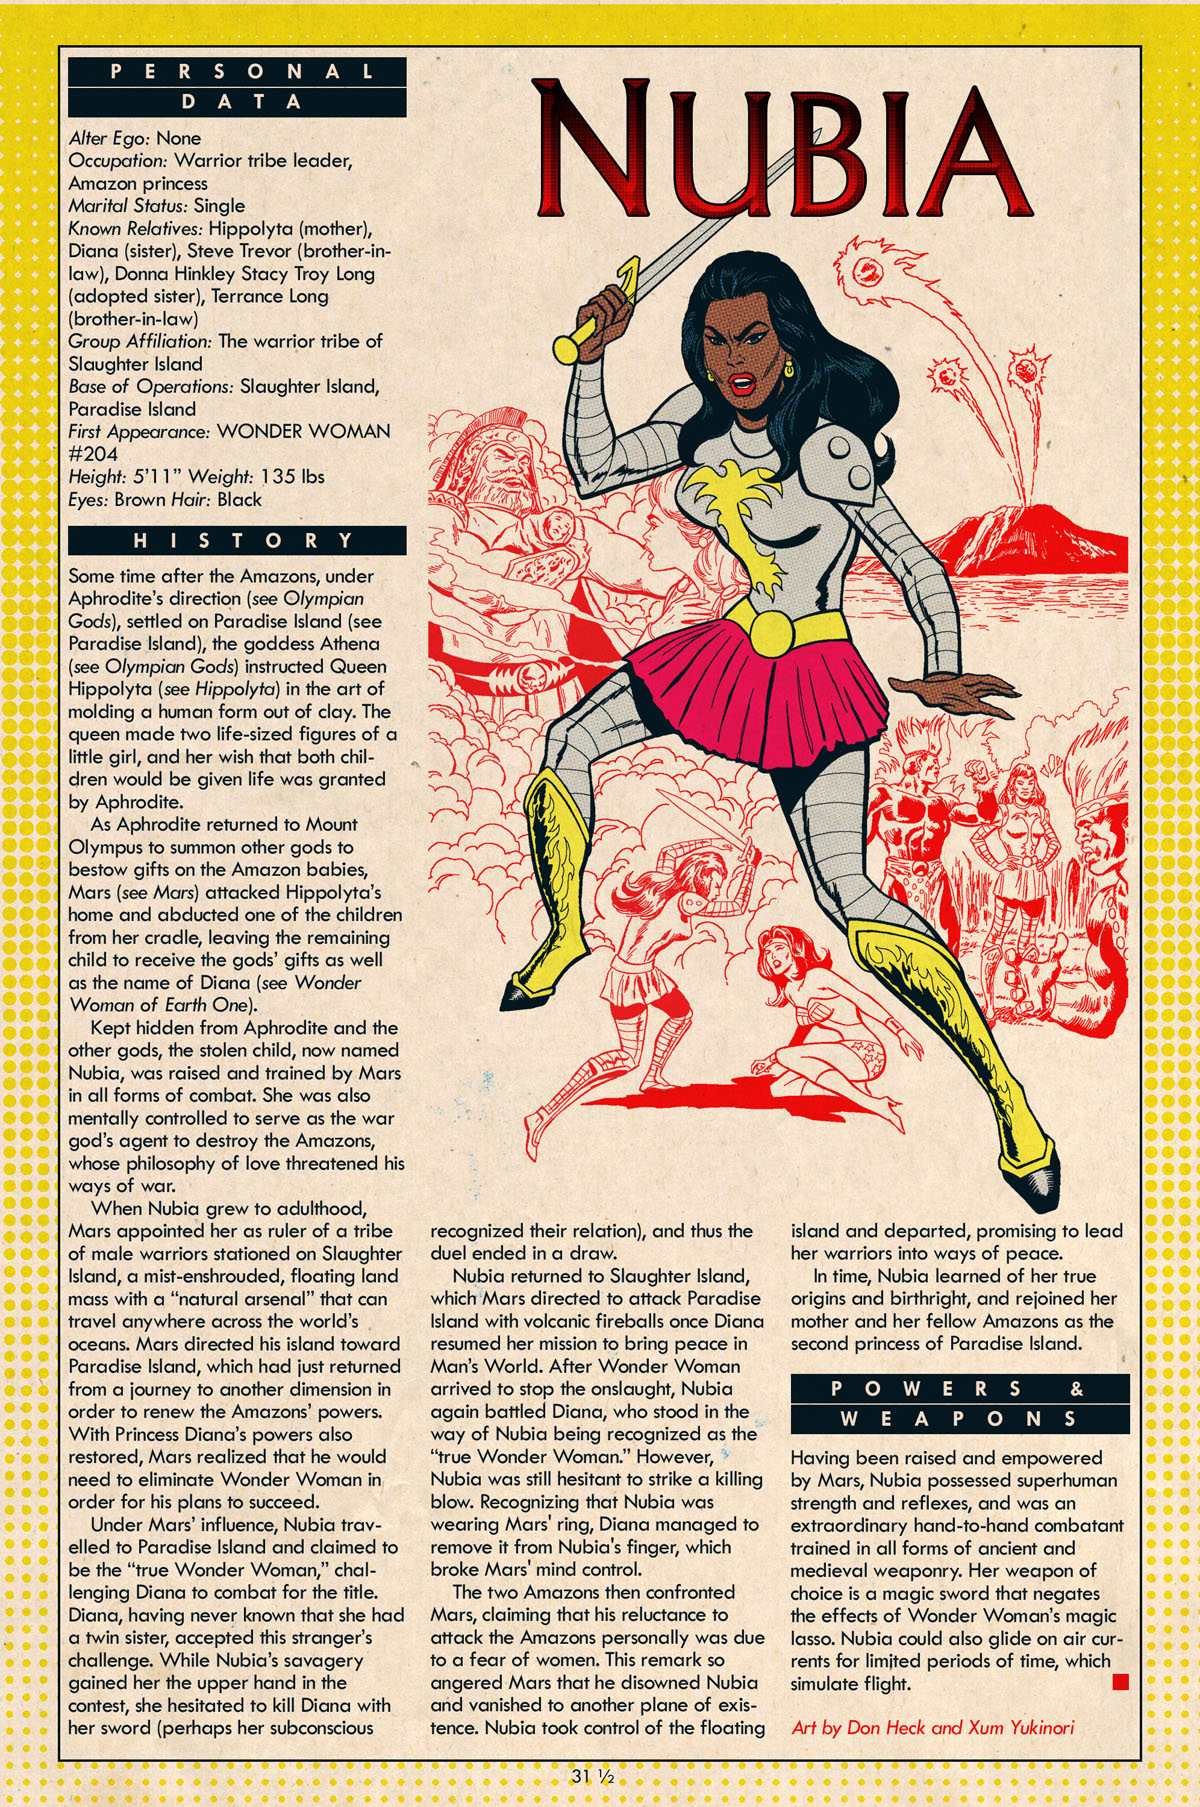 Nubia by Don Heck and Xum Yukinori - Xum Yukinori's Addendum to the Definitive Directory of the DC Universe!